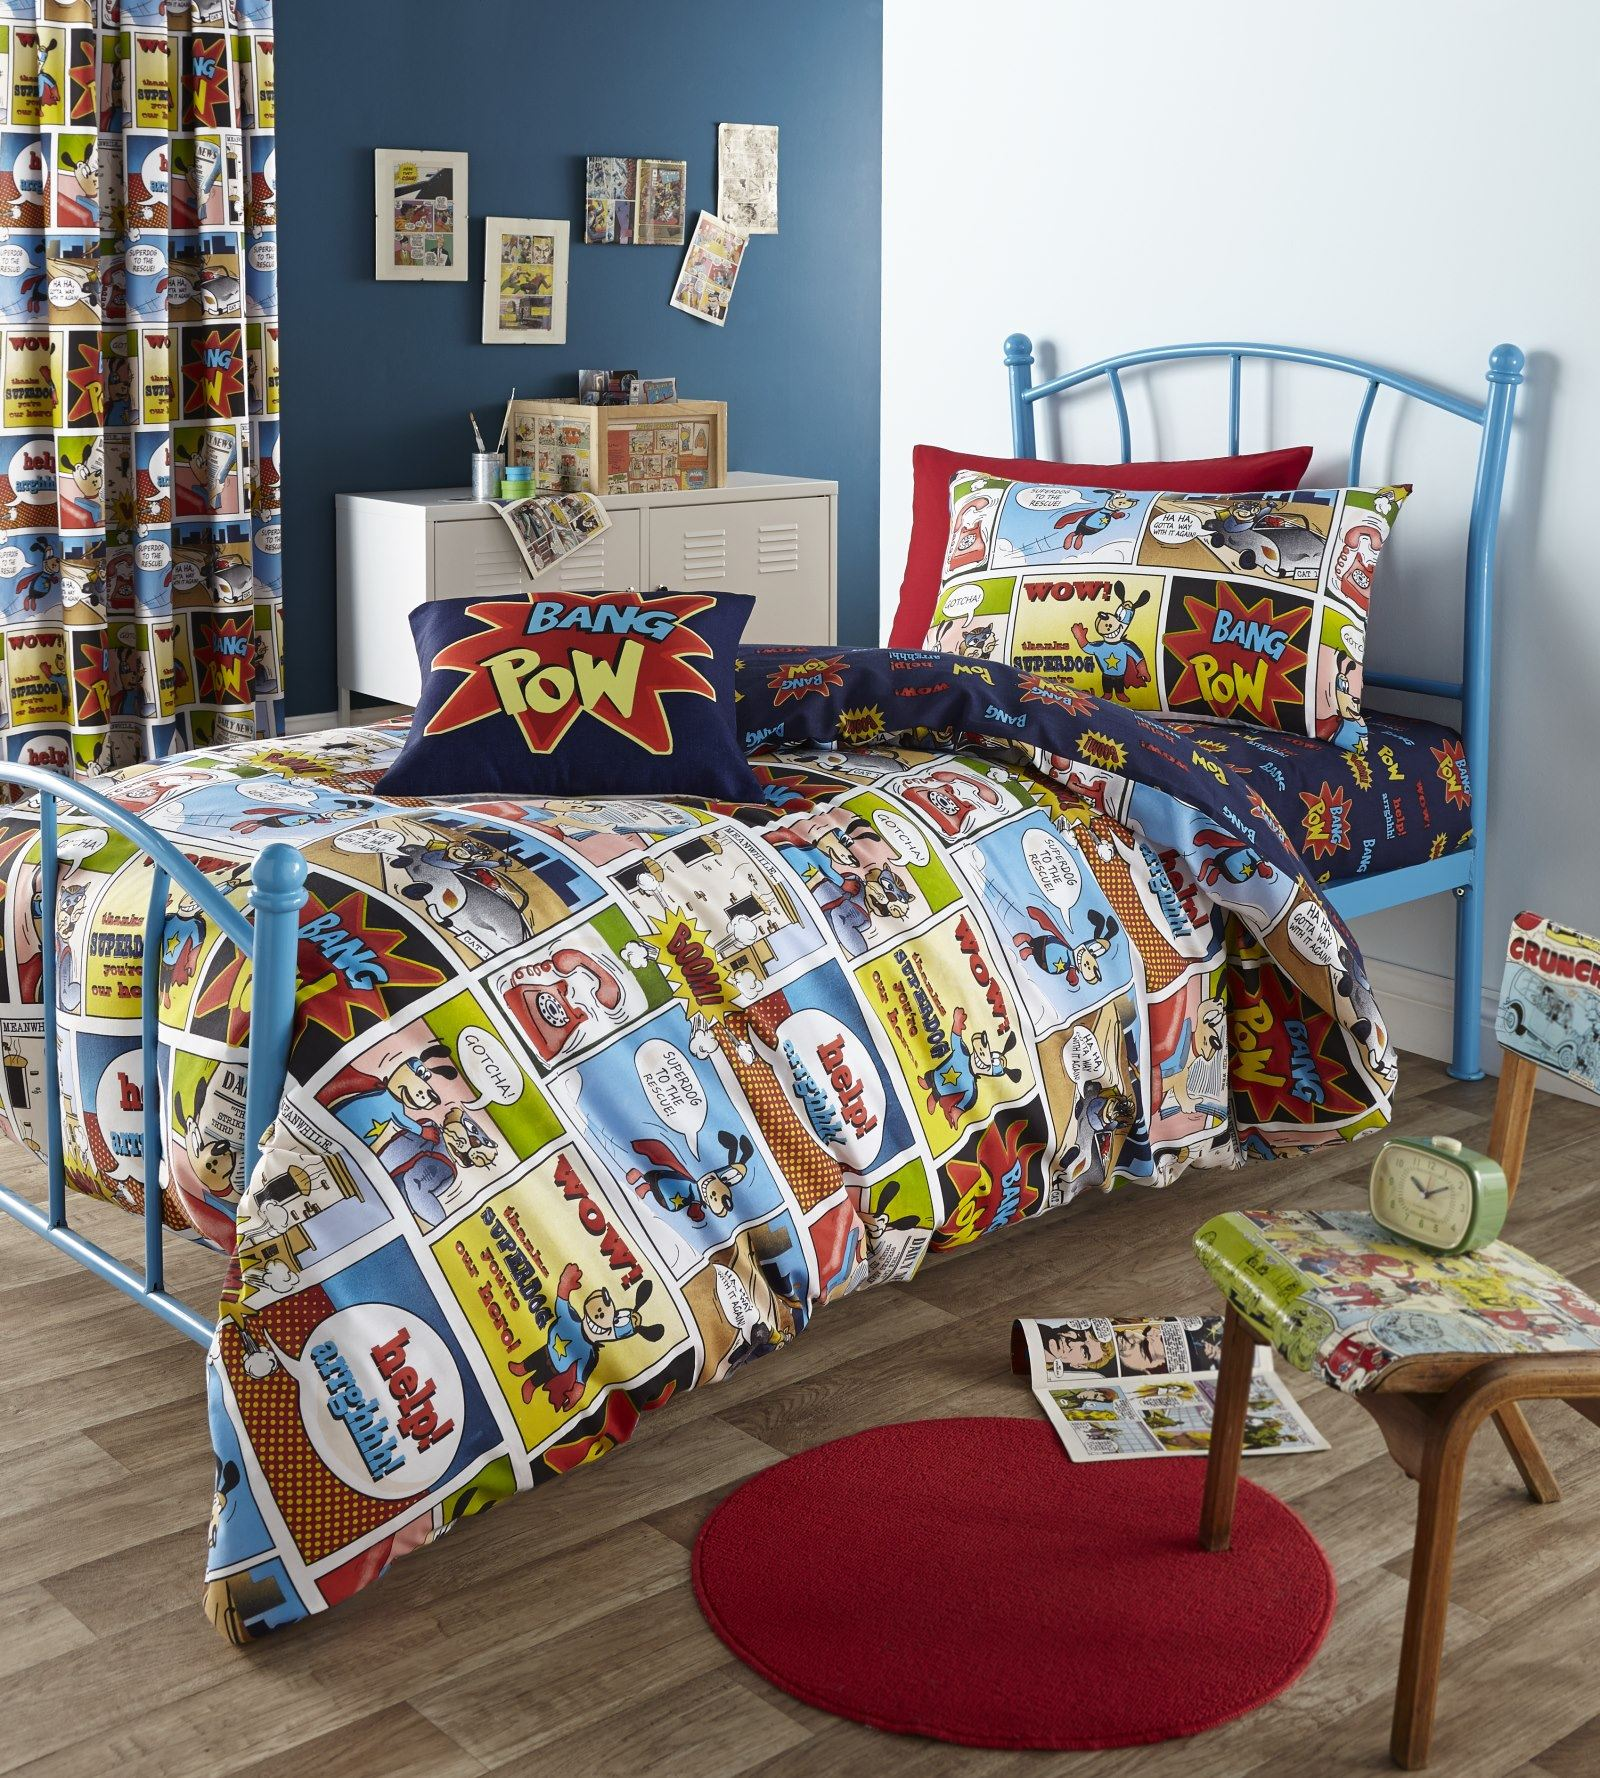 Amazing Superhero Bedding Sets With Wrought Iron Blue Bed Frame Round Red Rug And Wooden Chair